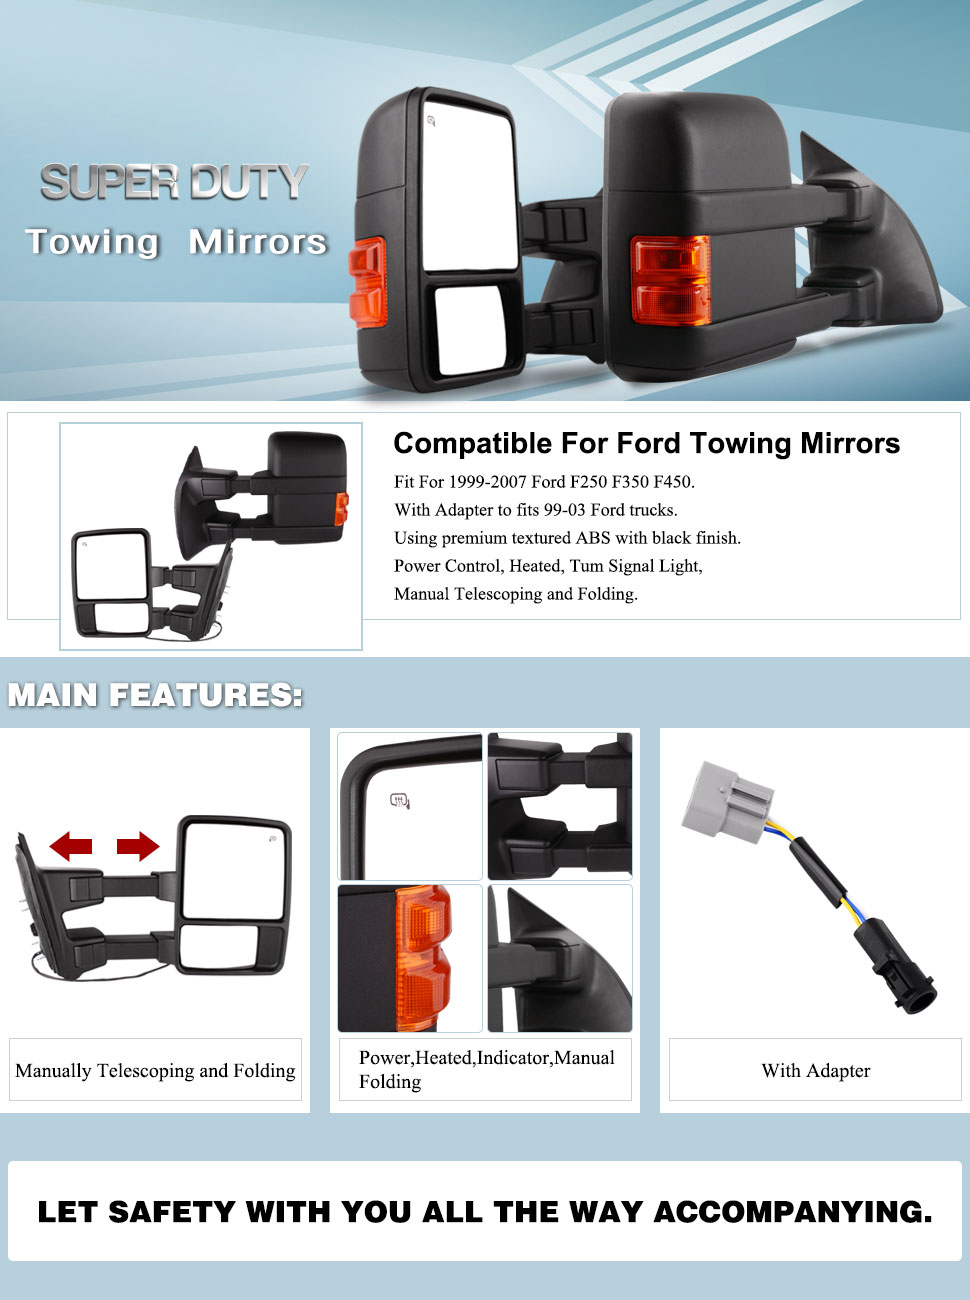 Yitamotor Towing Mirrors For Ford 1999 2007 F250 Remote Wiring Diagram Compatible F350 F450 F550 Tow Pair Side Mirror Power Heated With Signal Light